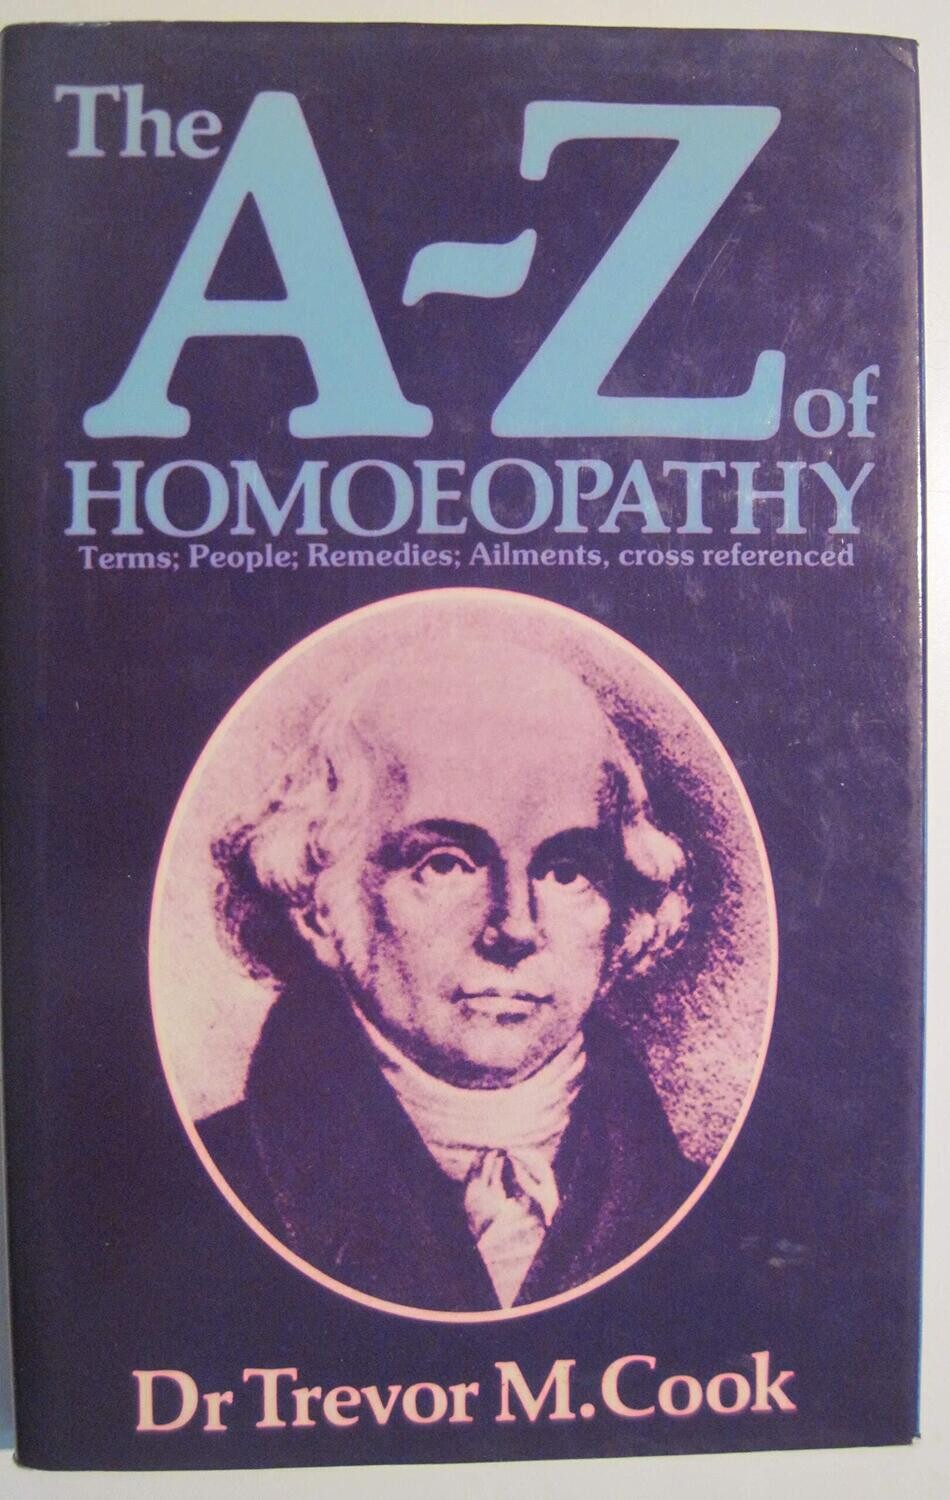 The A - Z of Homoeopathy: Terms, people, remedies, ailments, cross referenced*